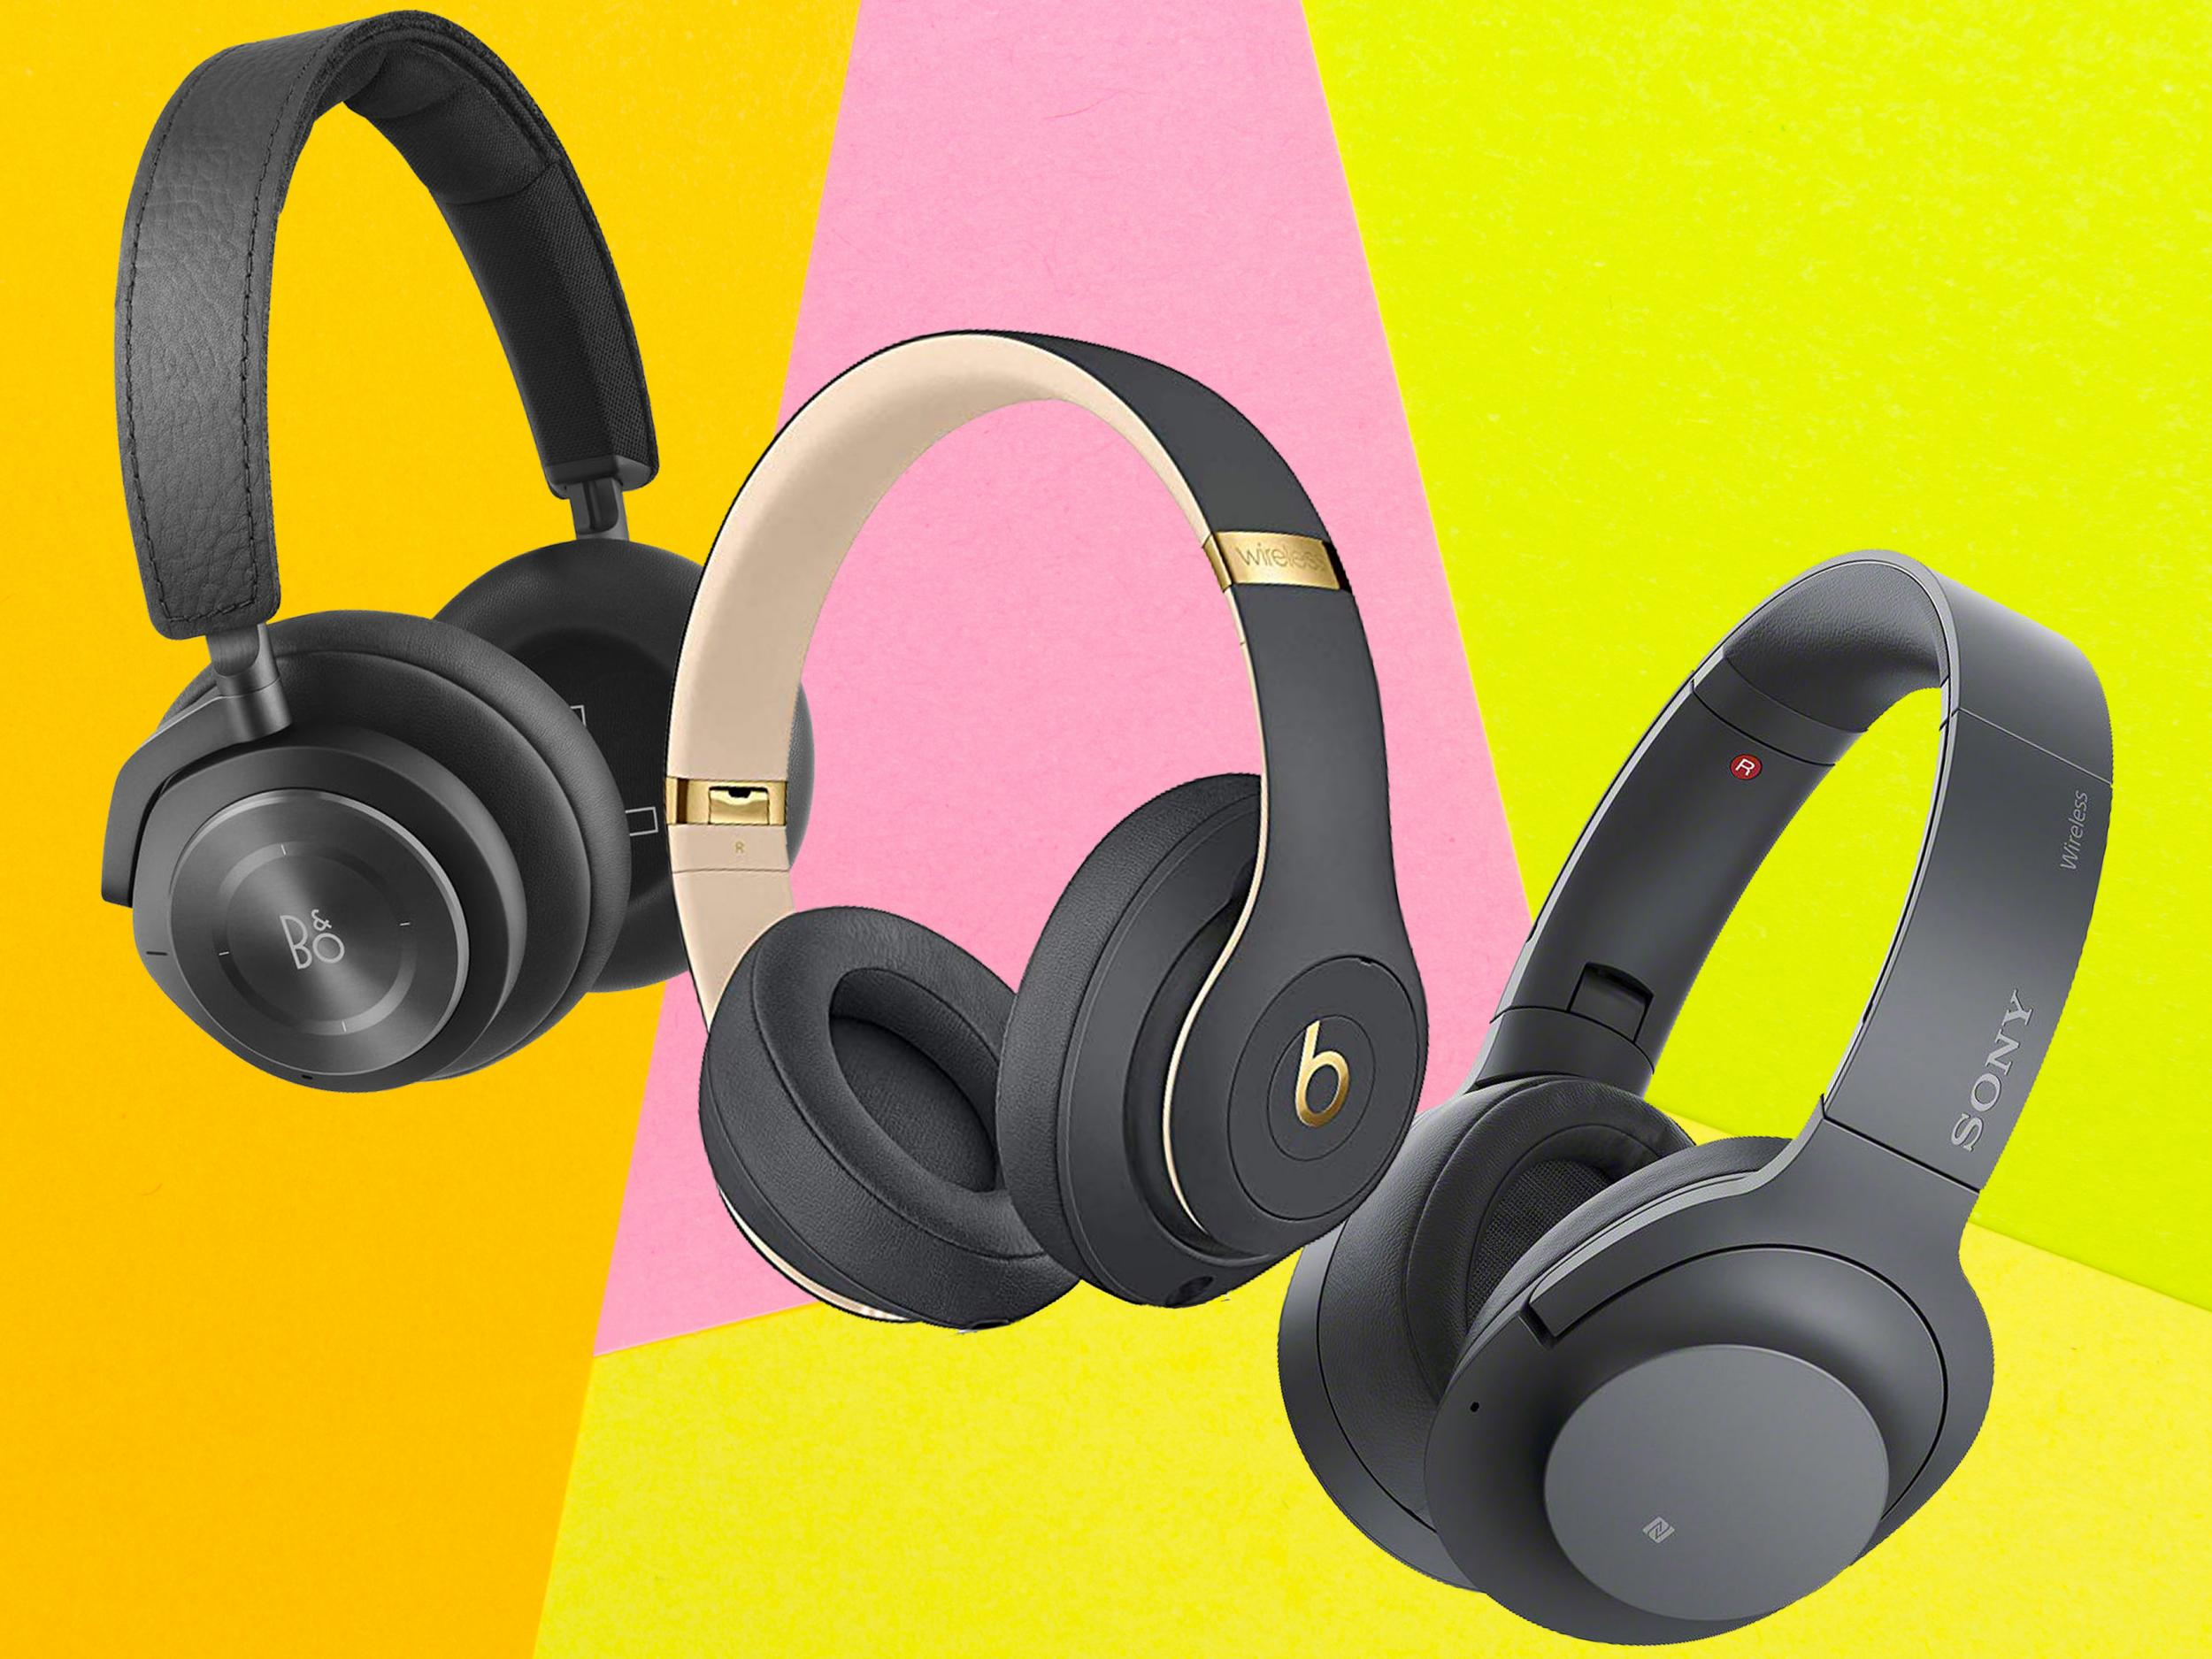 56ffc9c4c9e Best noise-cancelling headphones for trains and plane flights